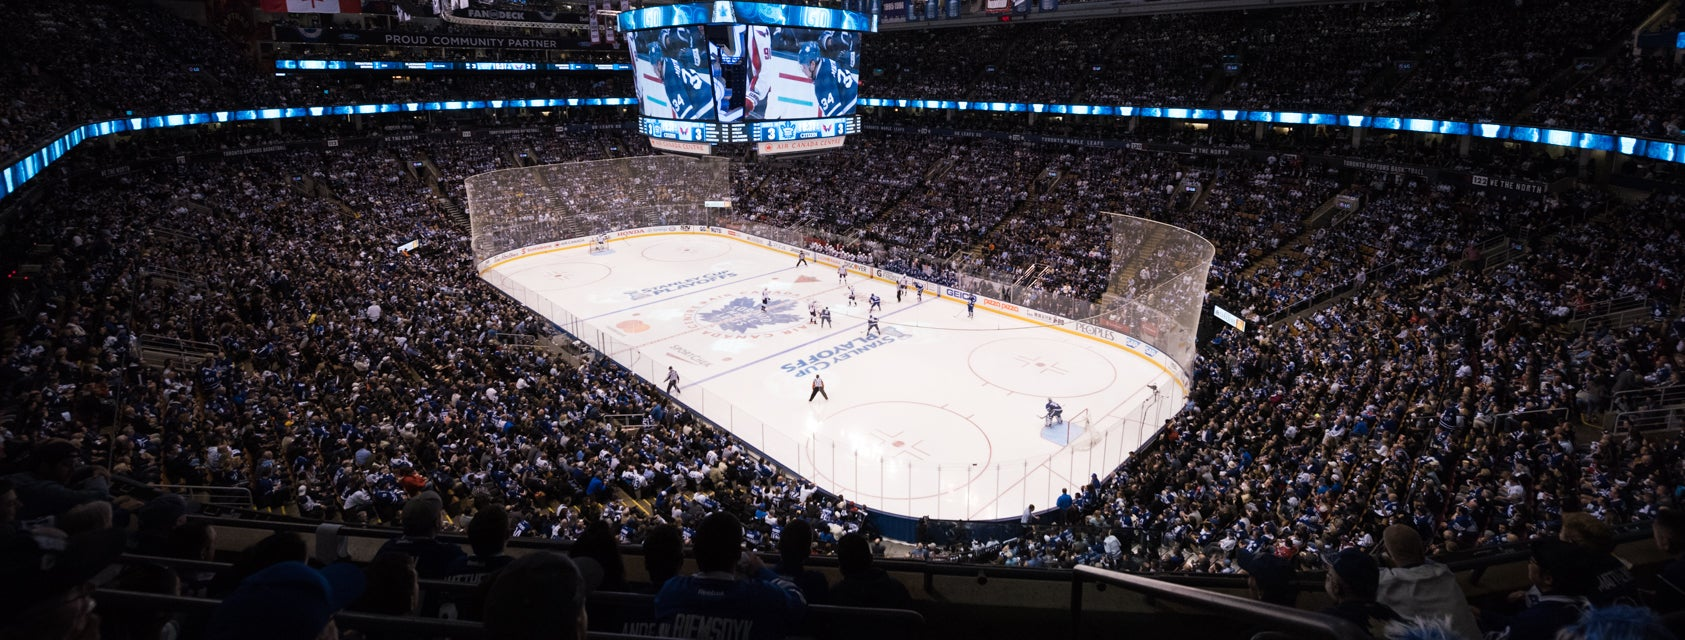 TOR MAPLE LEAFS vs CLB BLUE JACKETS - Green Corner 306, Row 10 ...